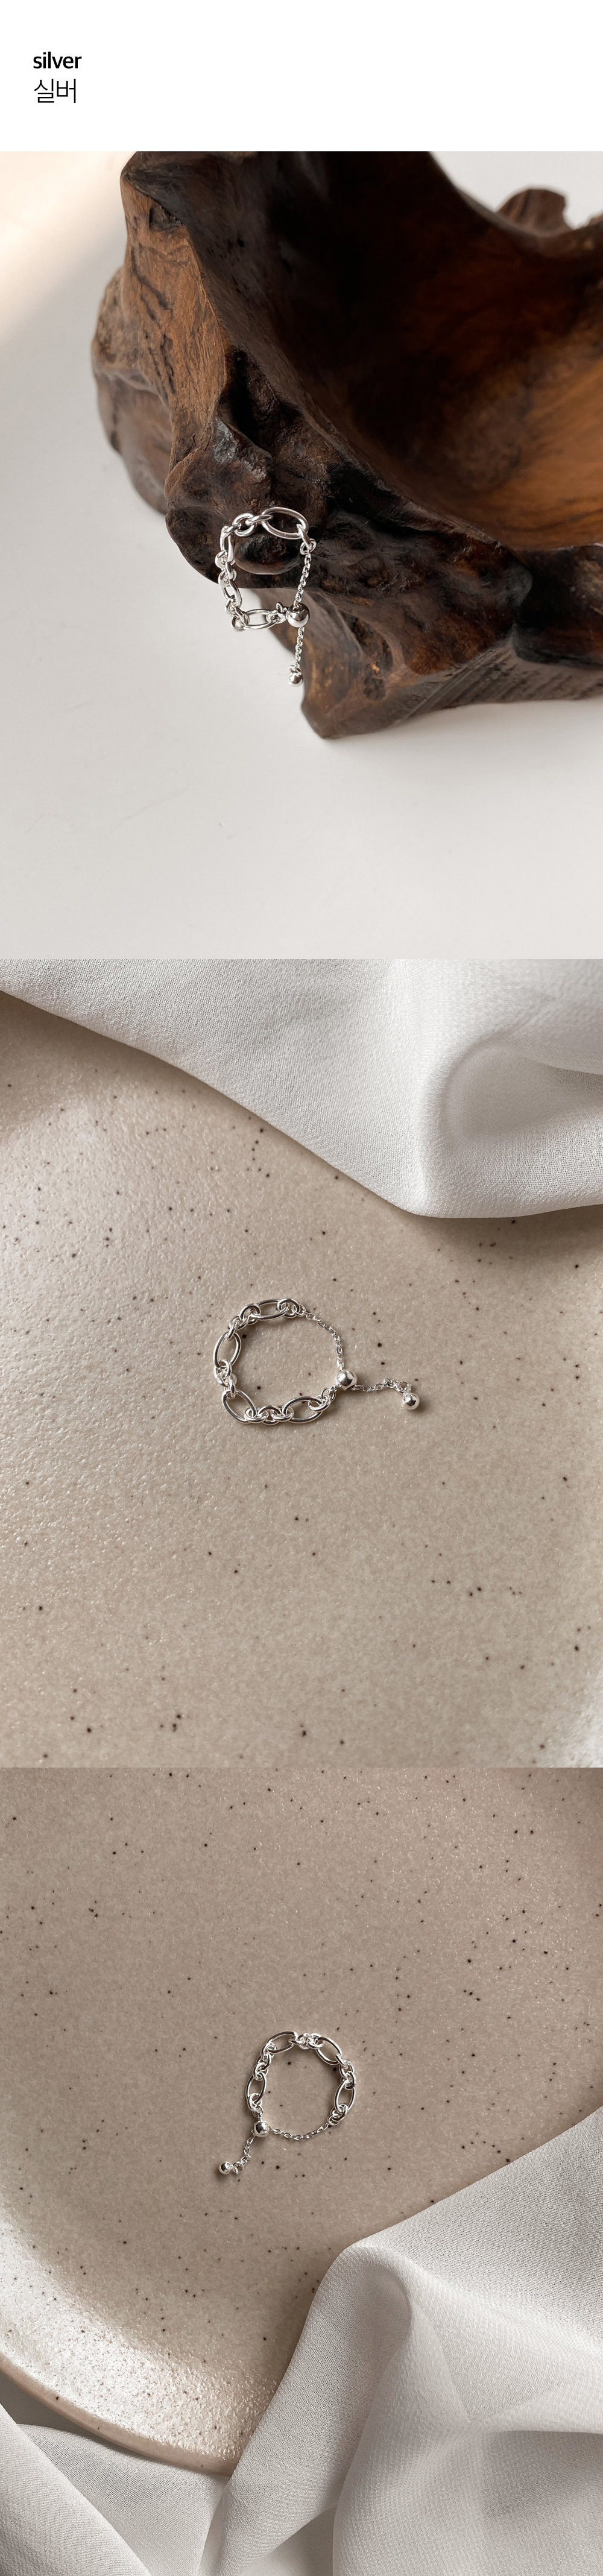 Silver 925 adjustable chain ring